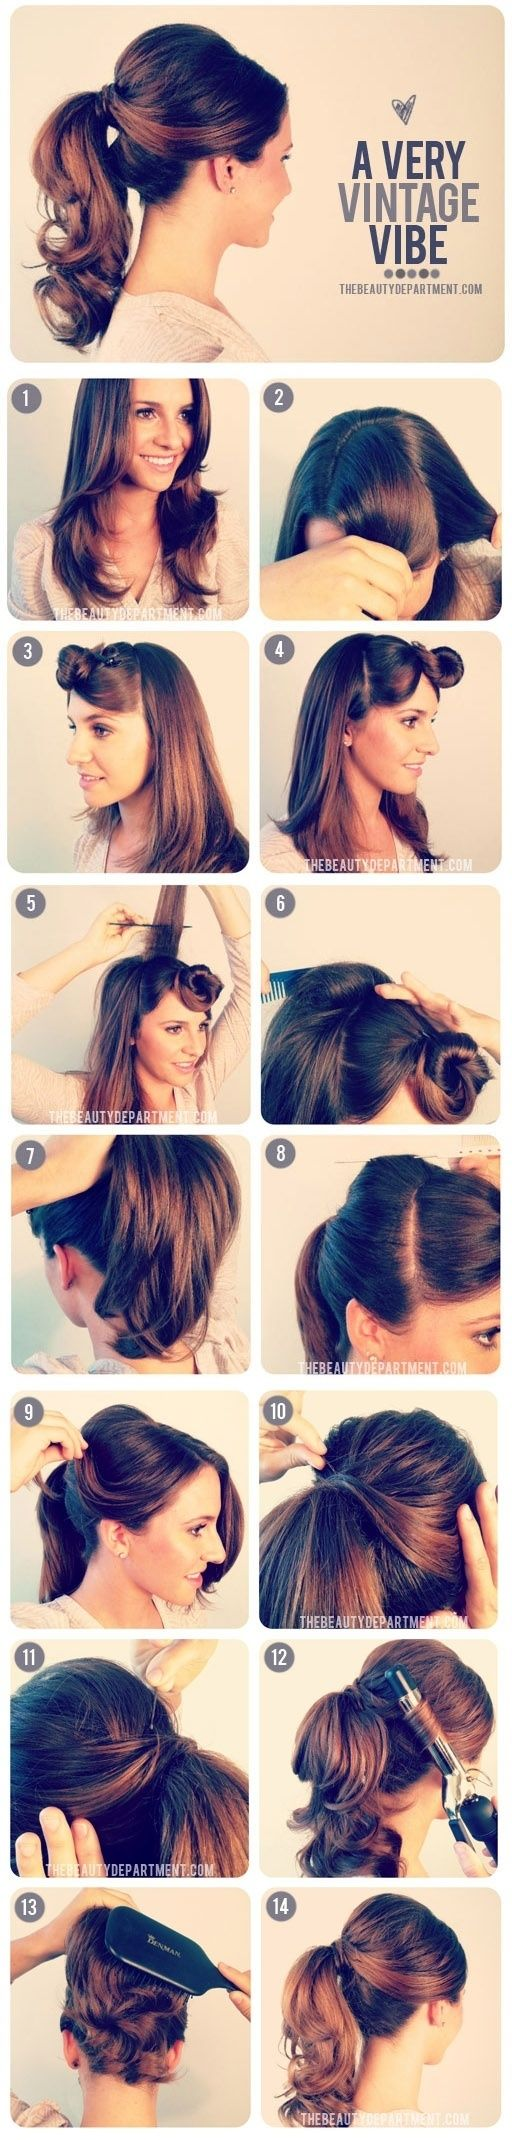 1950 S Inspired Ponytail Hair Styles Long Hair Styles Vintage Ponytail